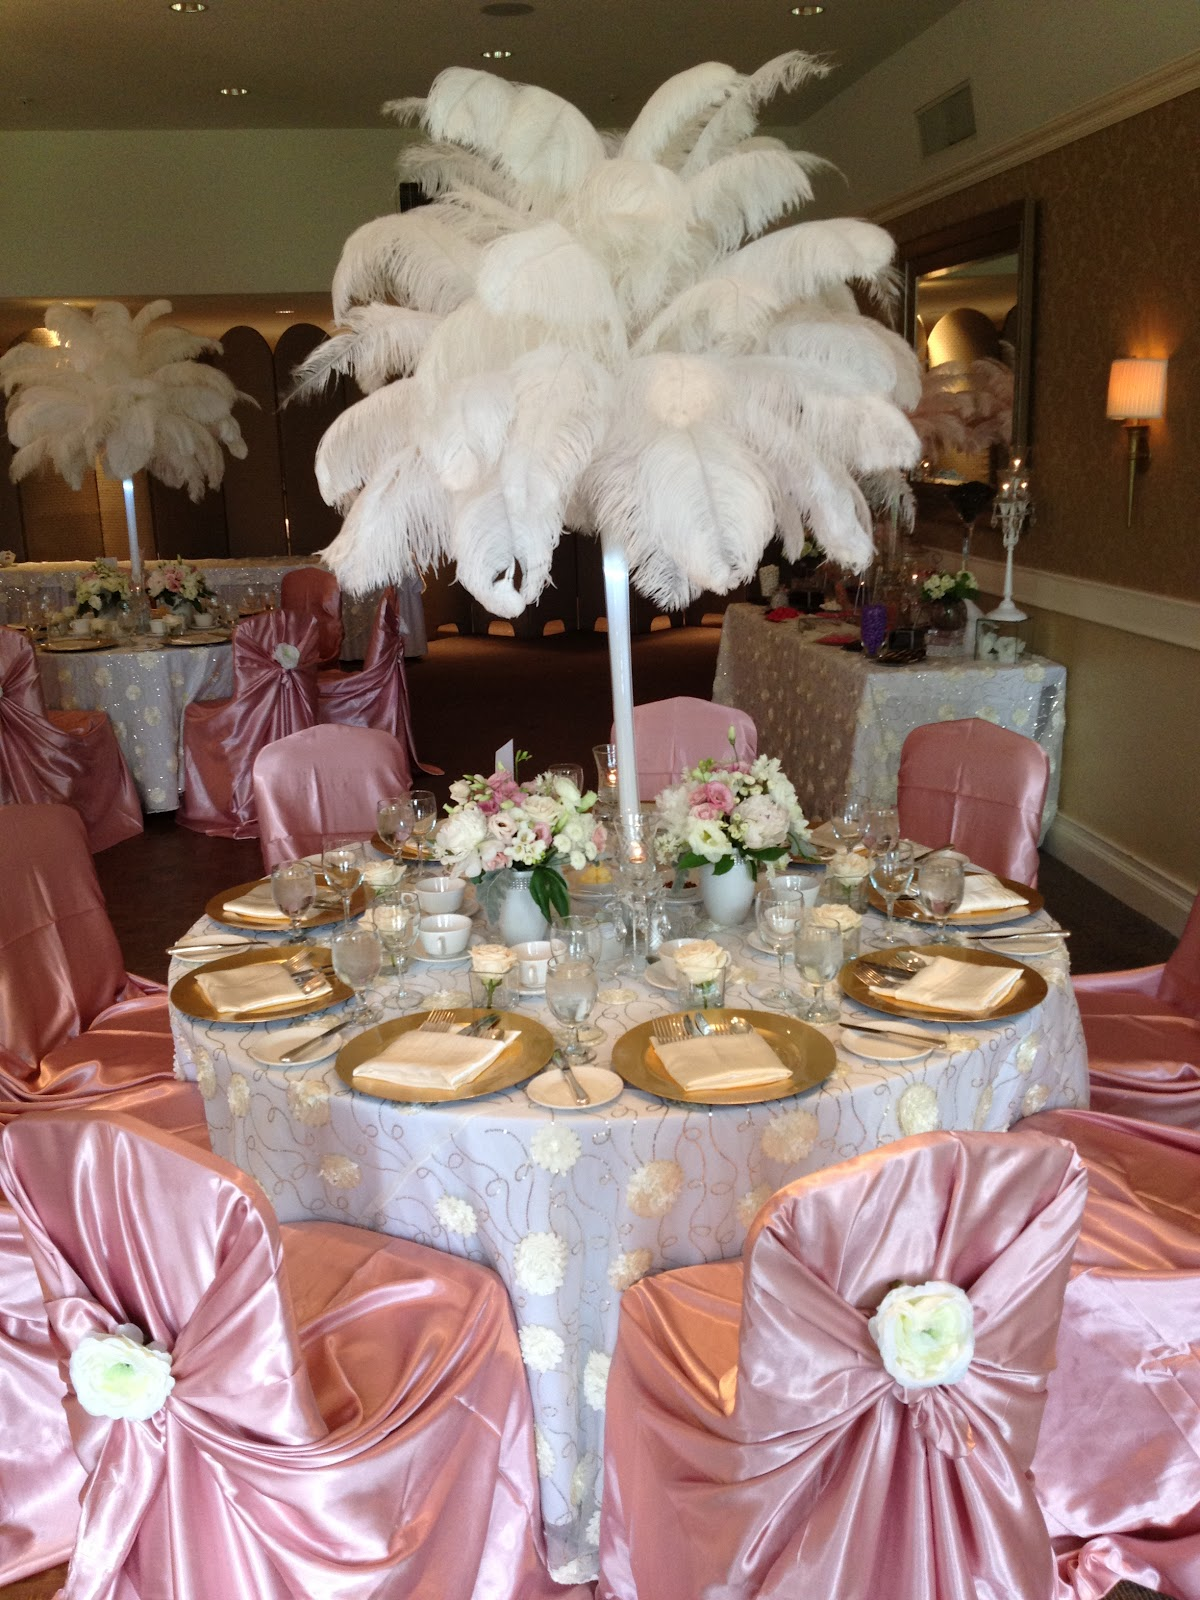 The Flowers Were Placed Underneath Large White Ostrich Centerpieces And On Chair Covers Pulled Look Together